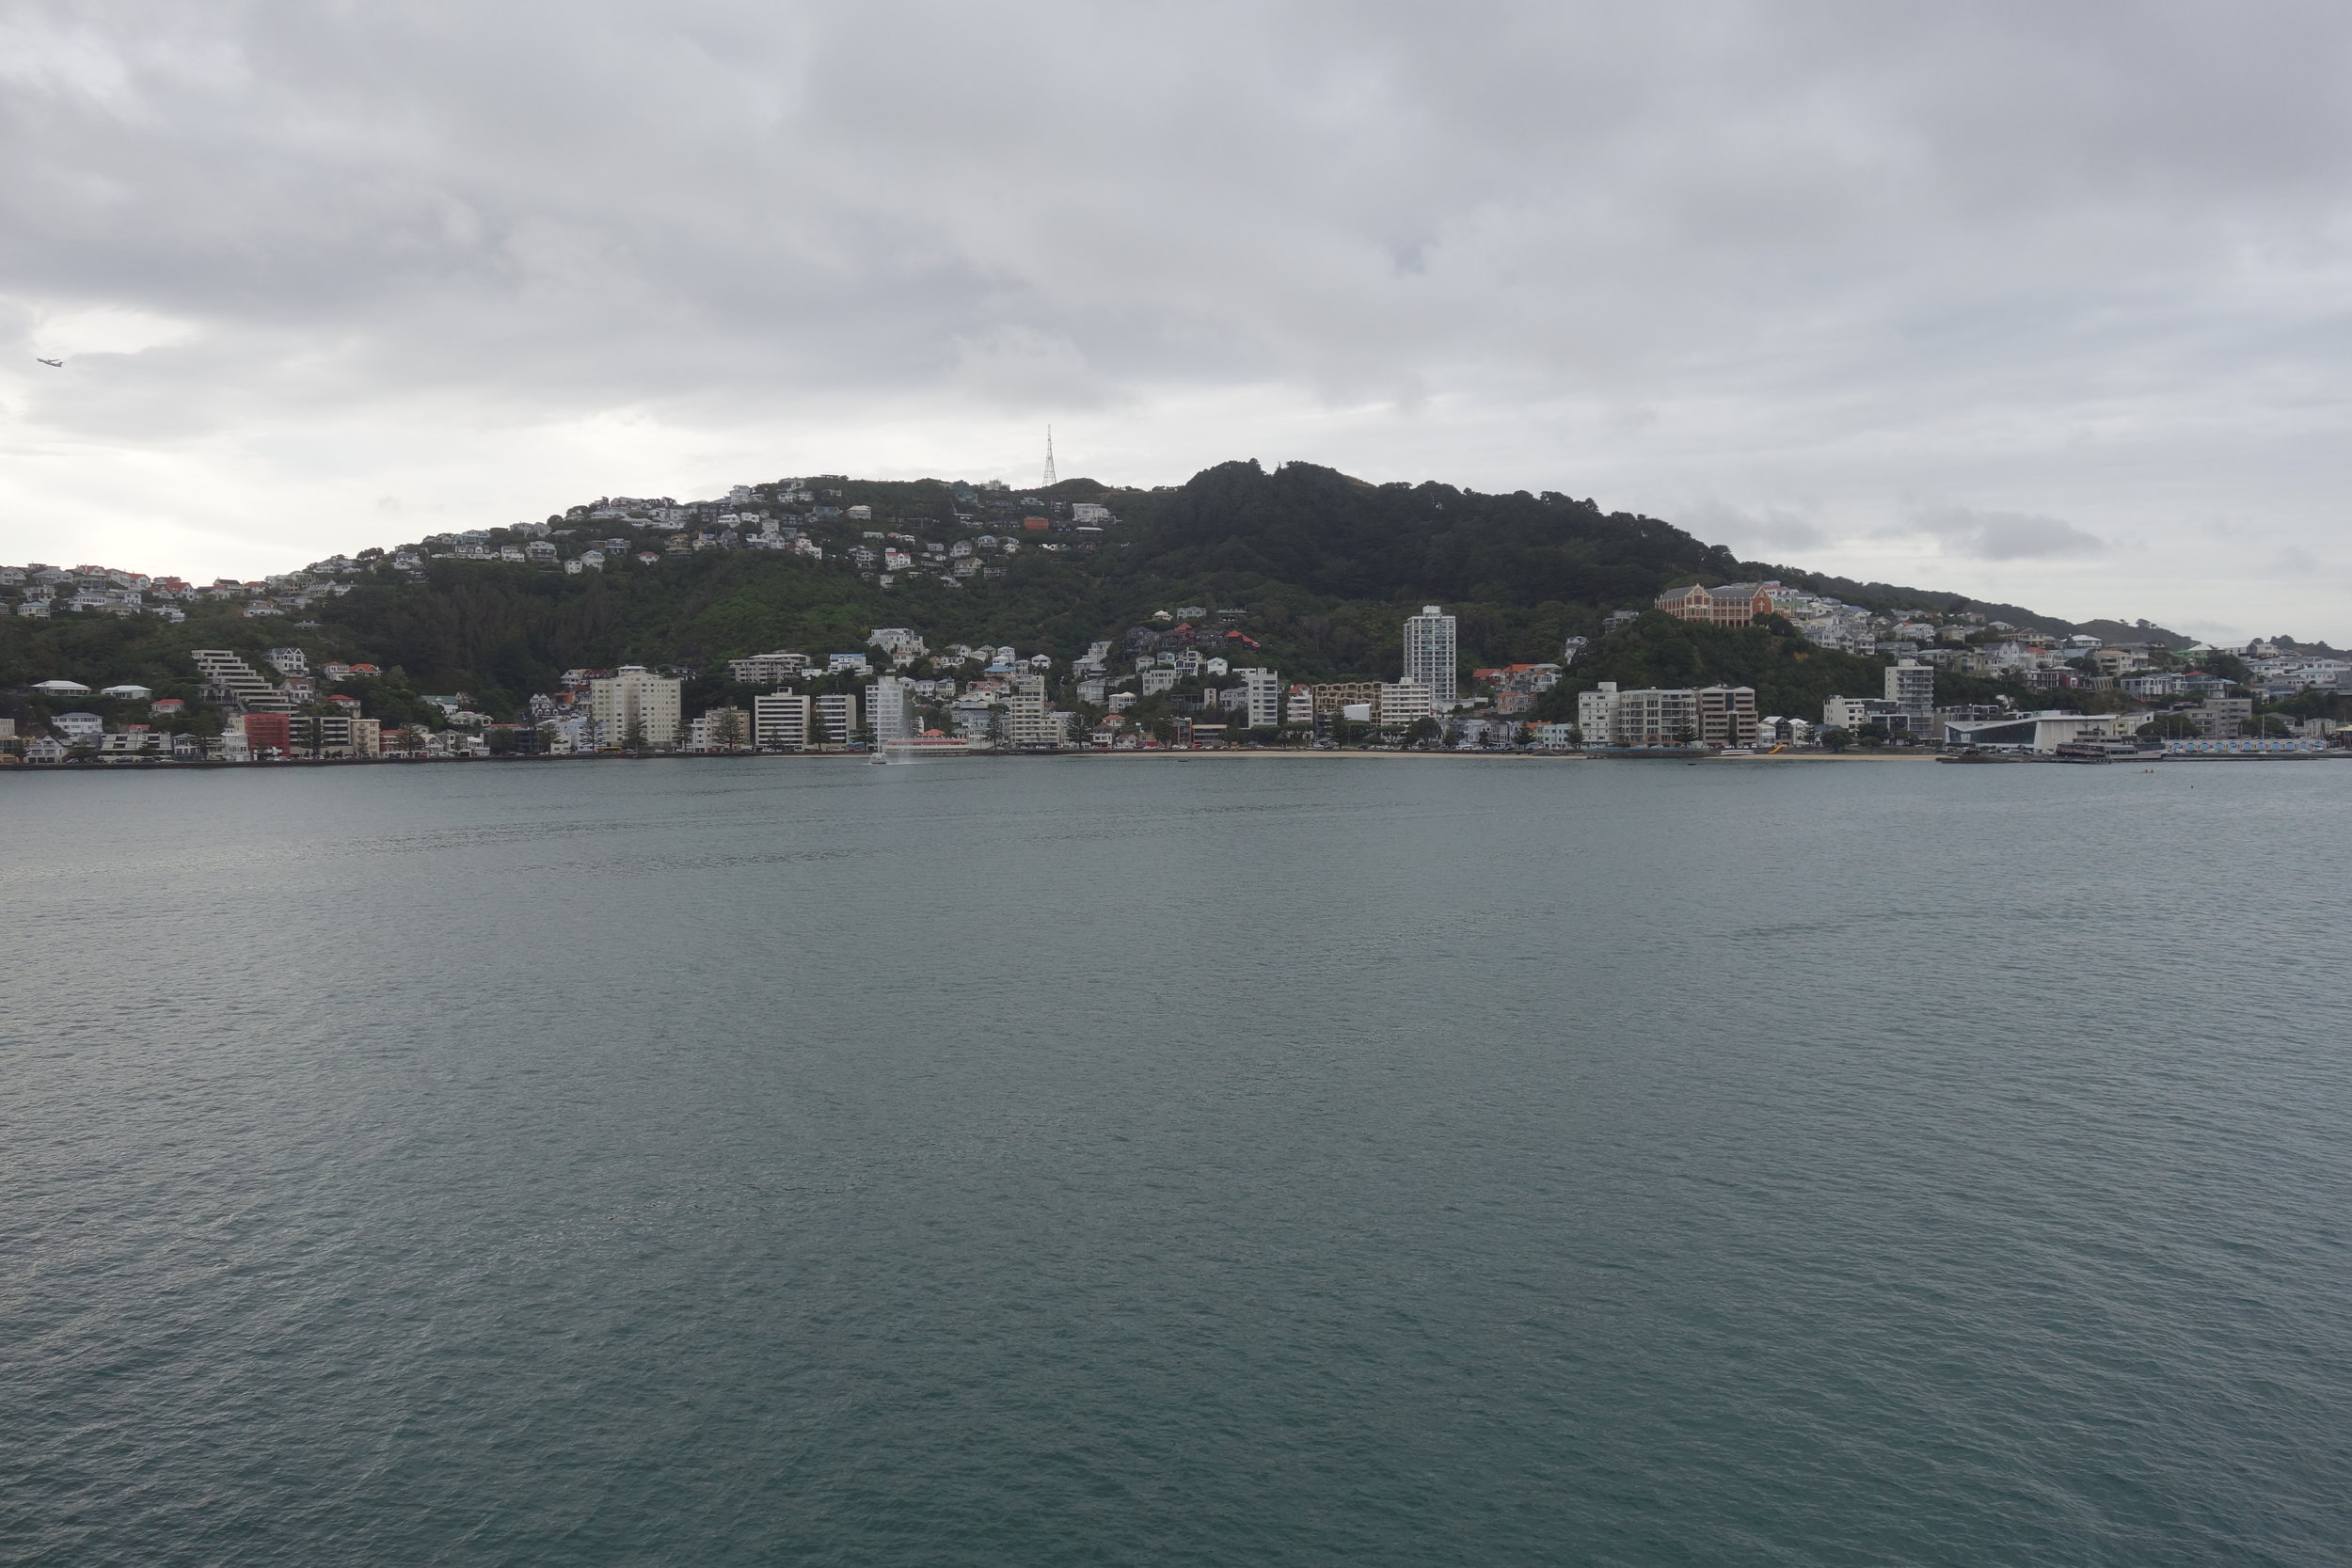 See you Wellington. So pleased it's going to be a calm sailing.Onboard my personal luxury liner with The Bluebridge Bike Club.